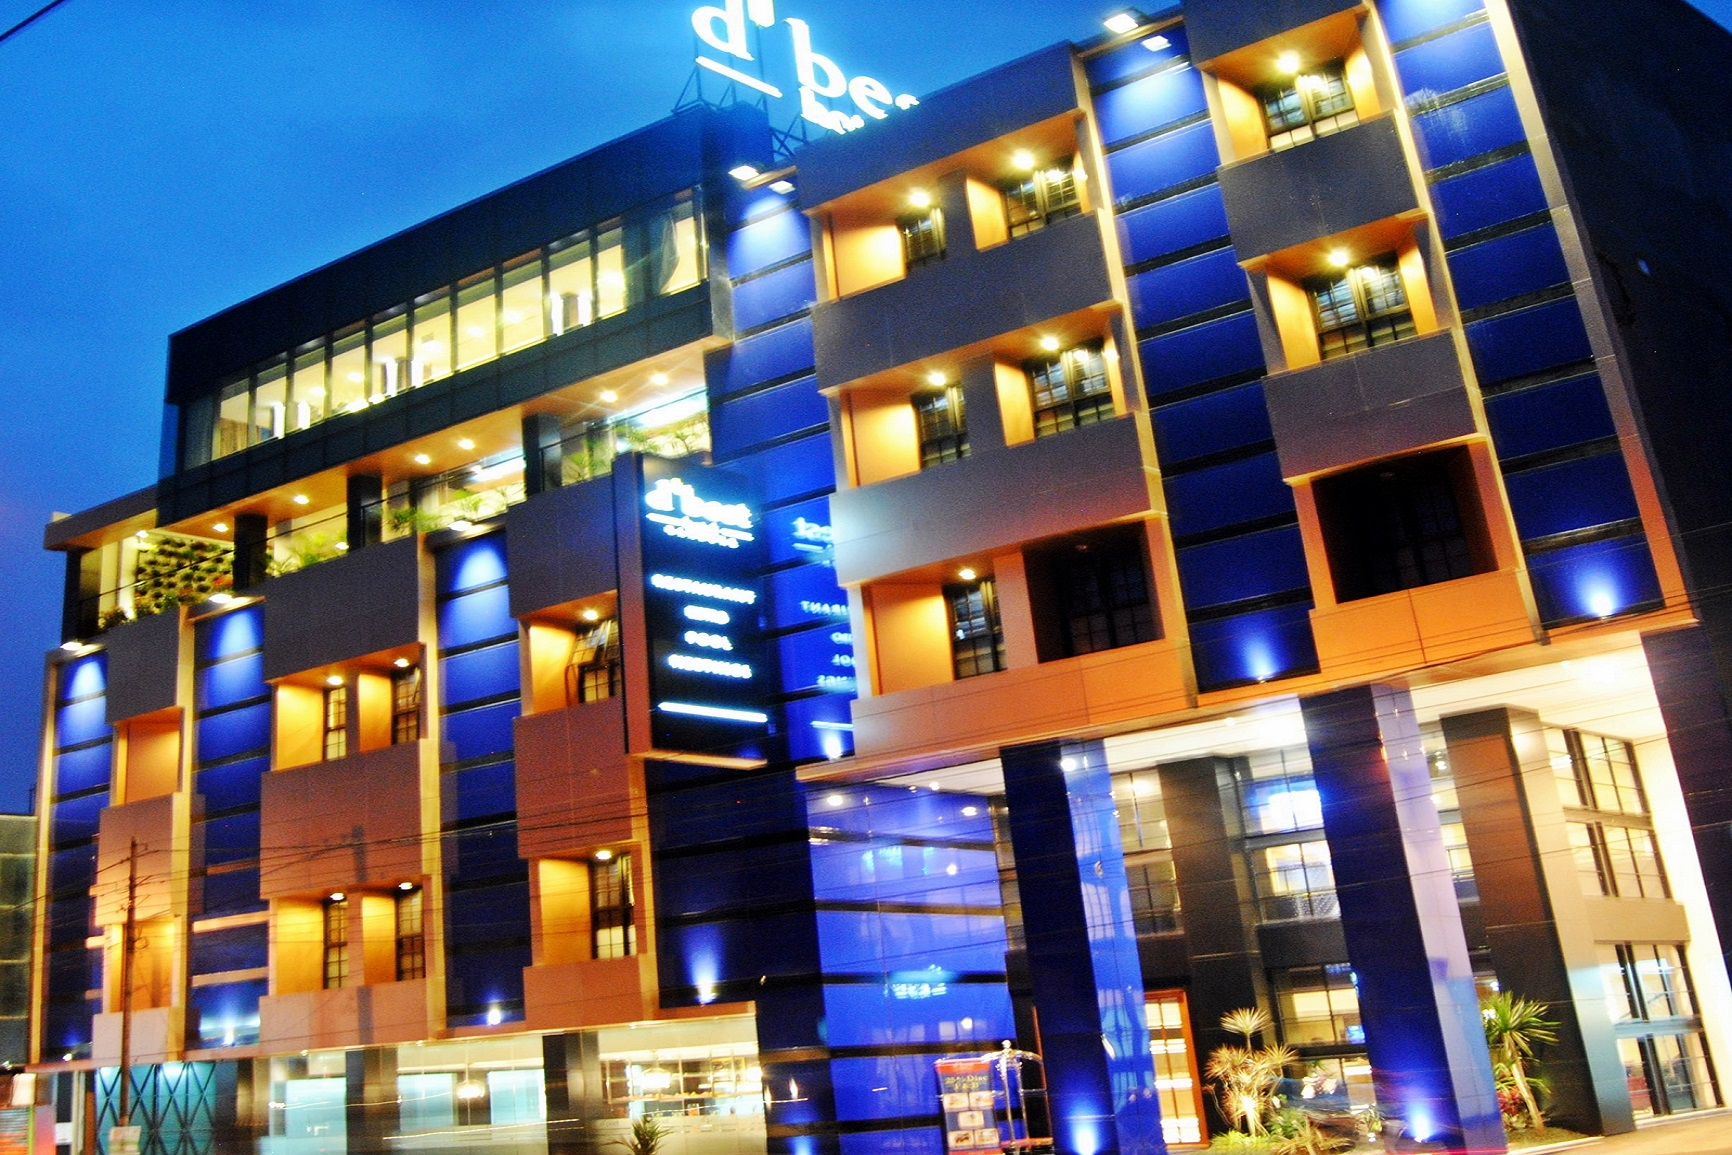 Our Hotels - Dbest Hotel Bandung